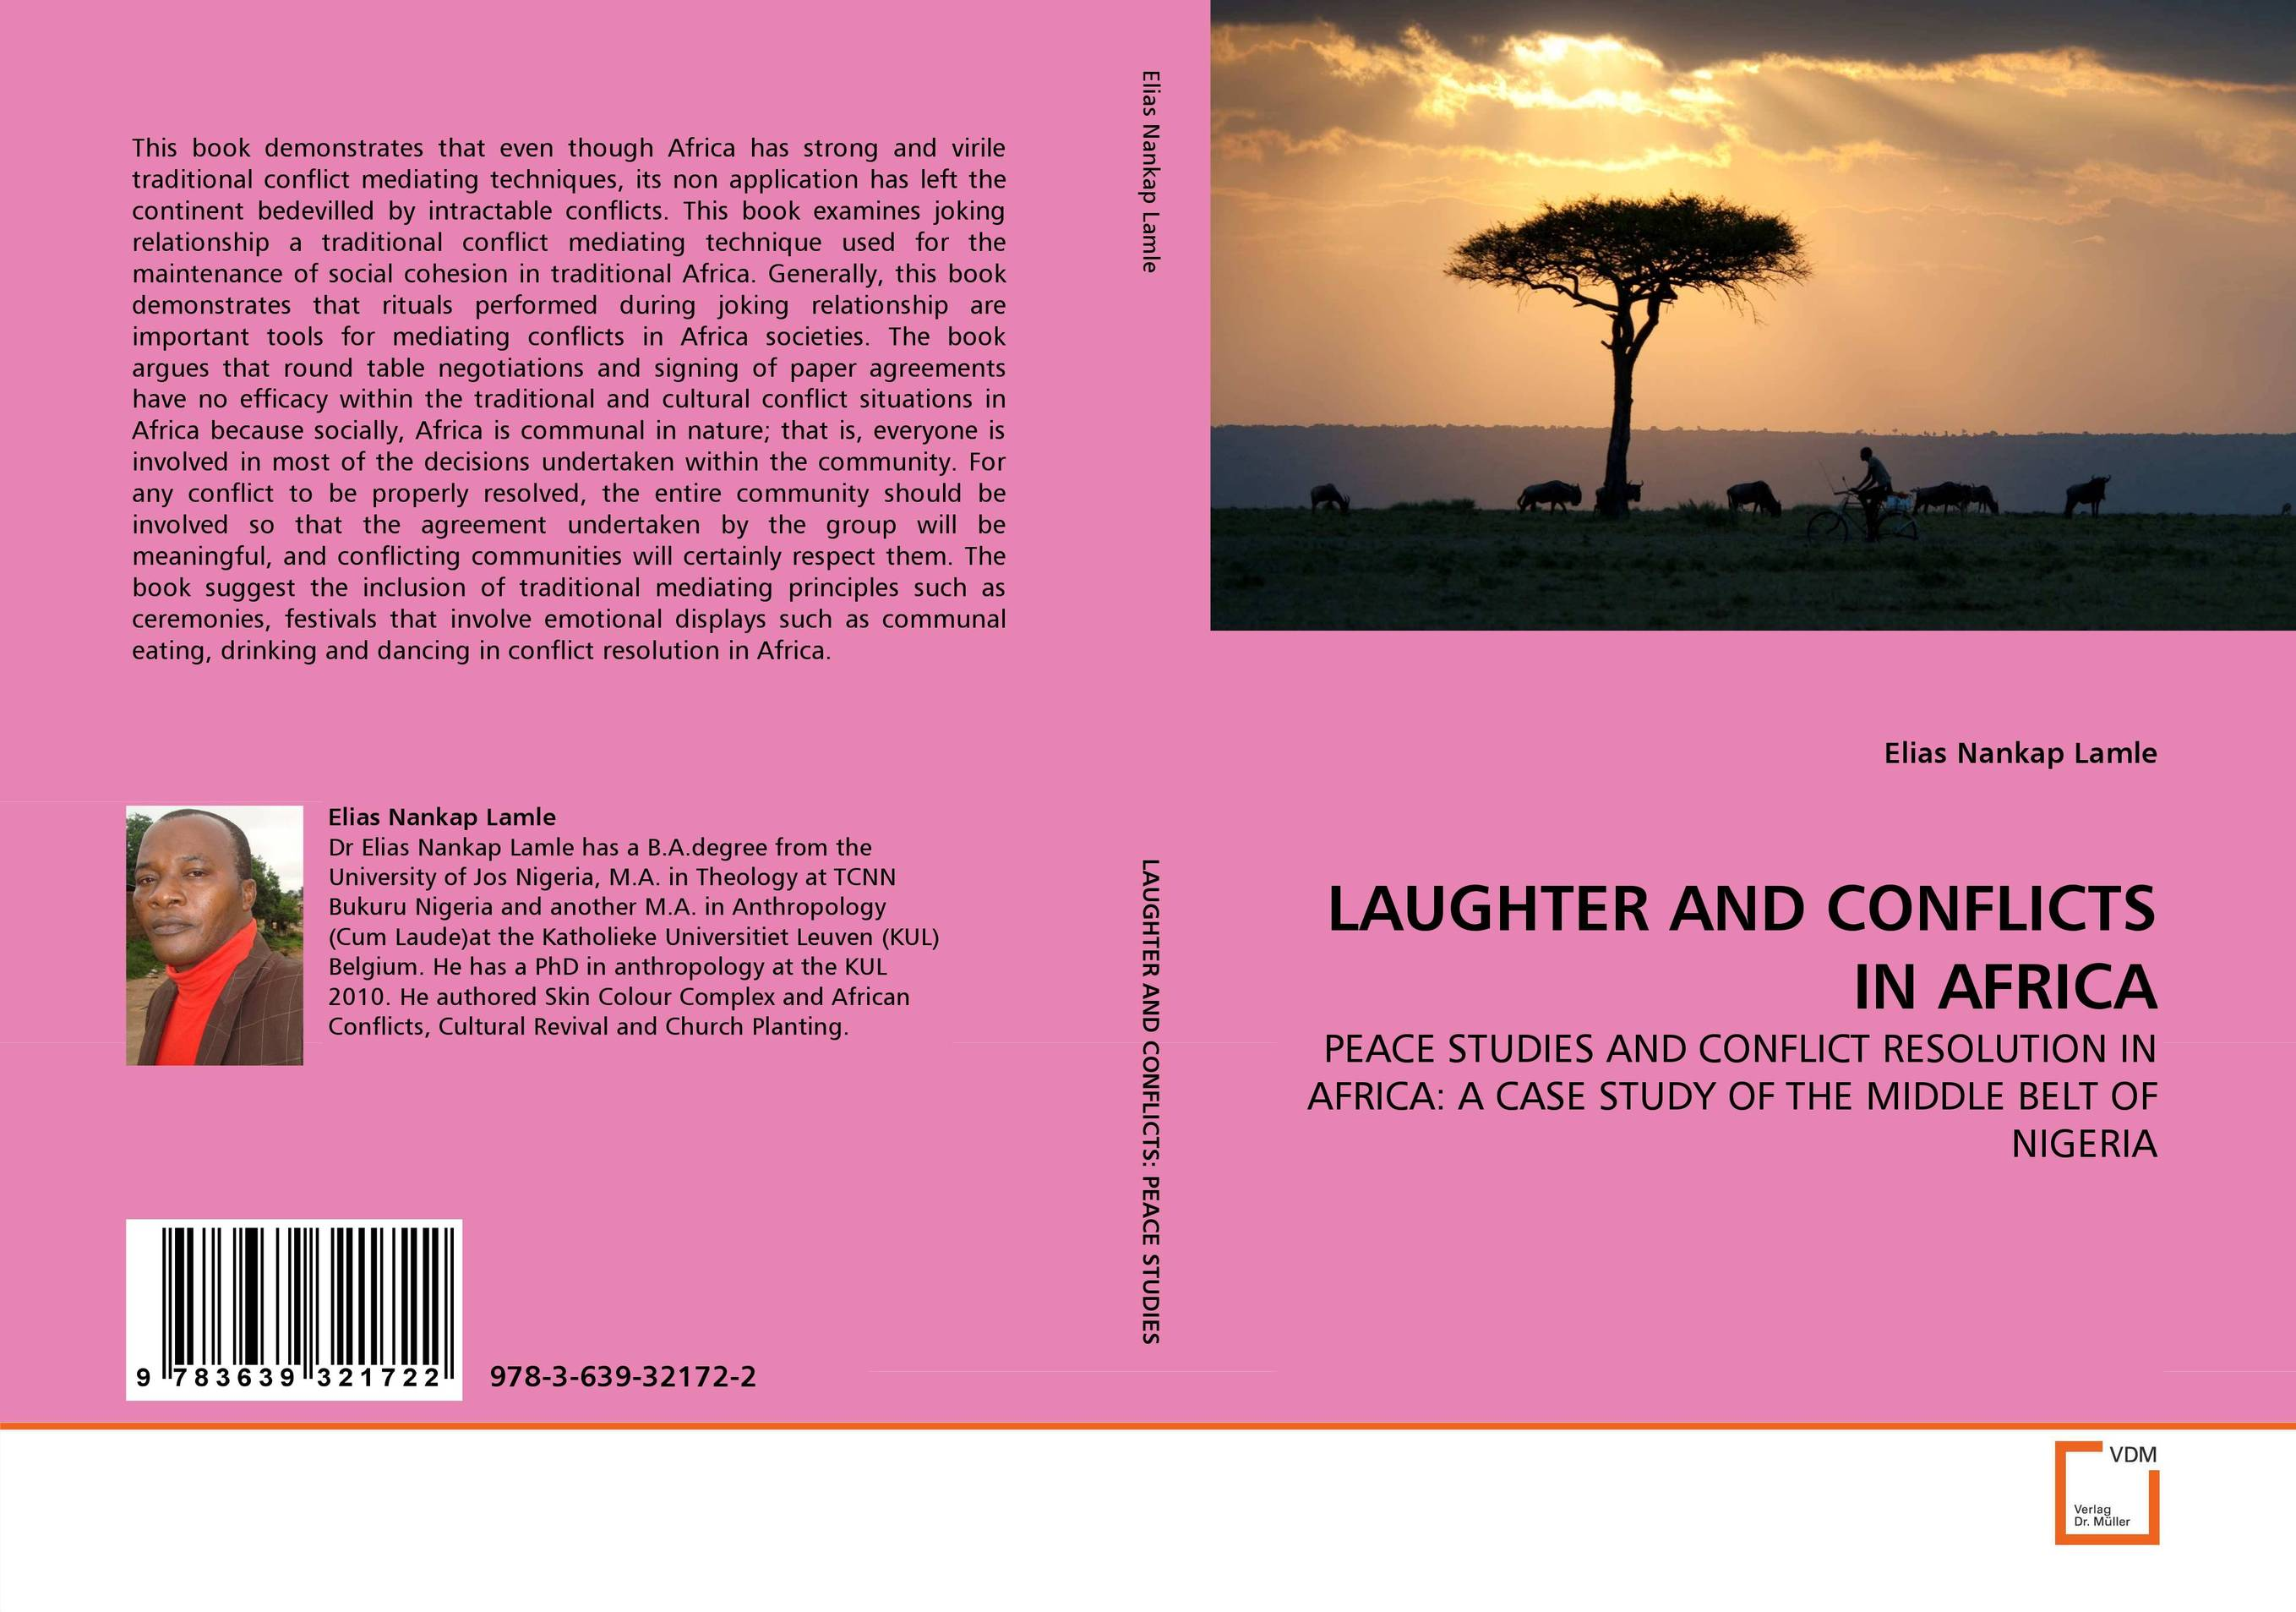 LAUGHTER AND CONFLICTS IN AFRICA trans border ethnic hegemony and political conflict in africa